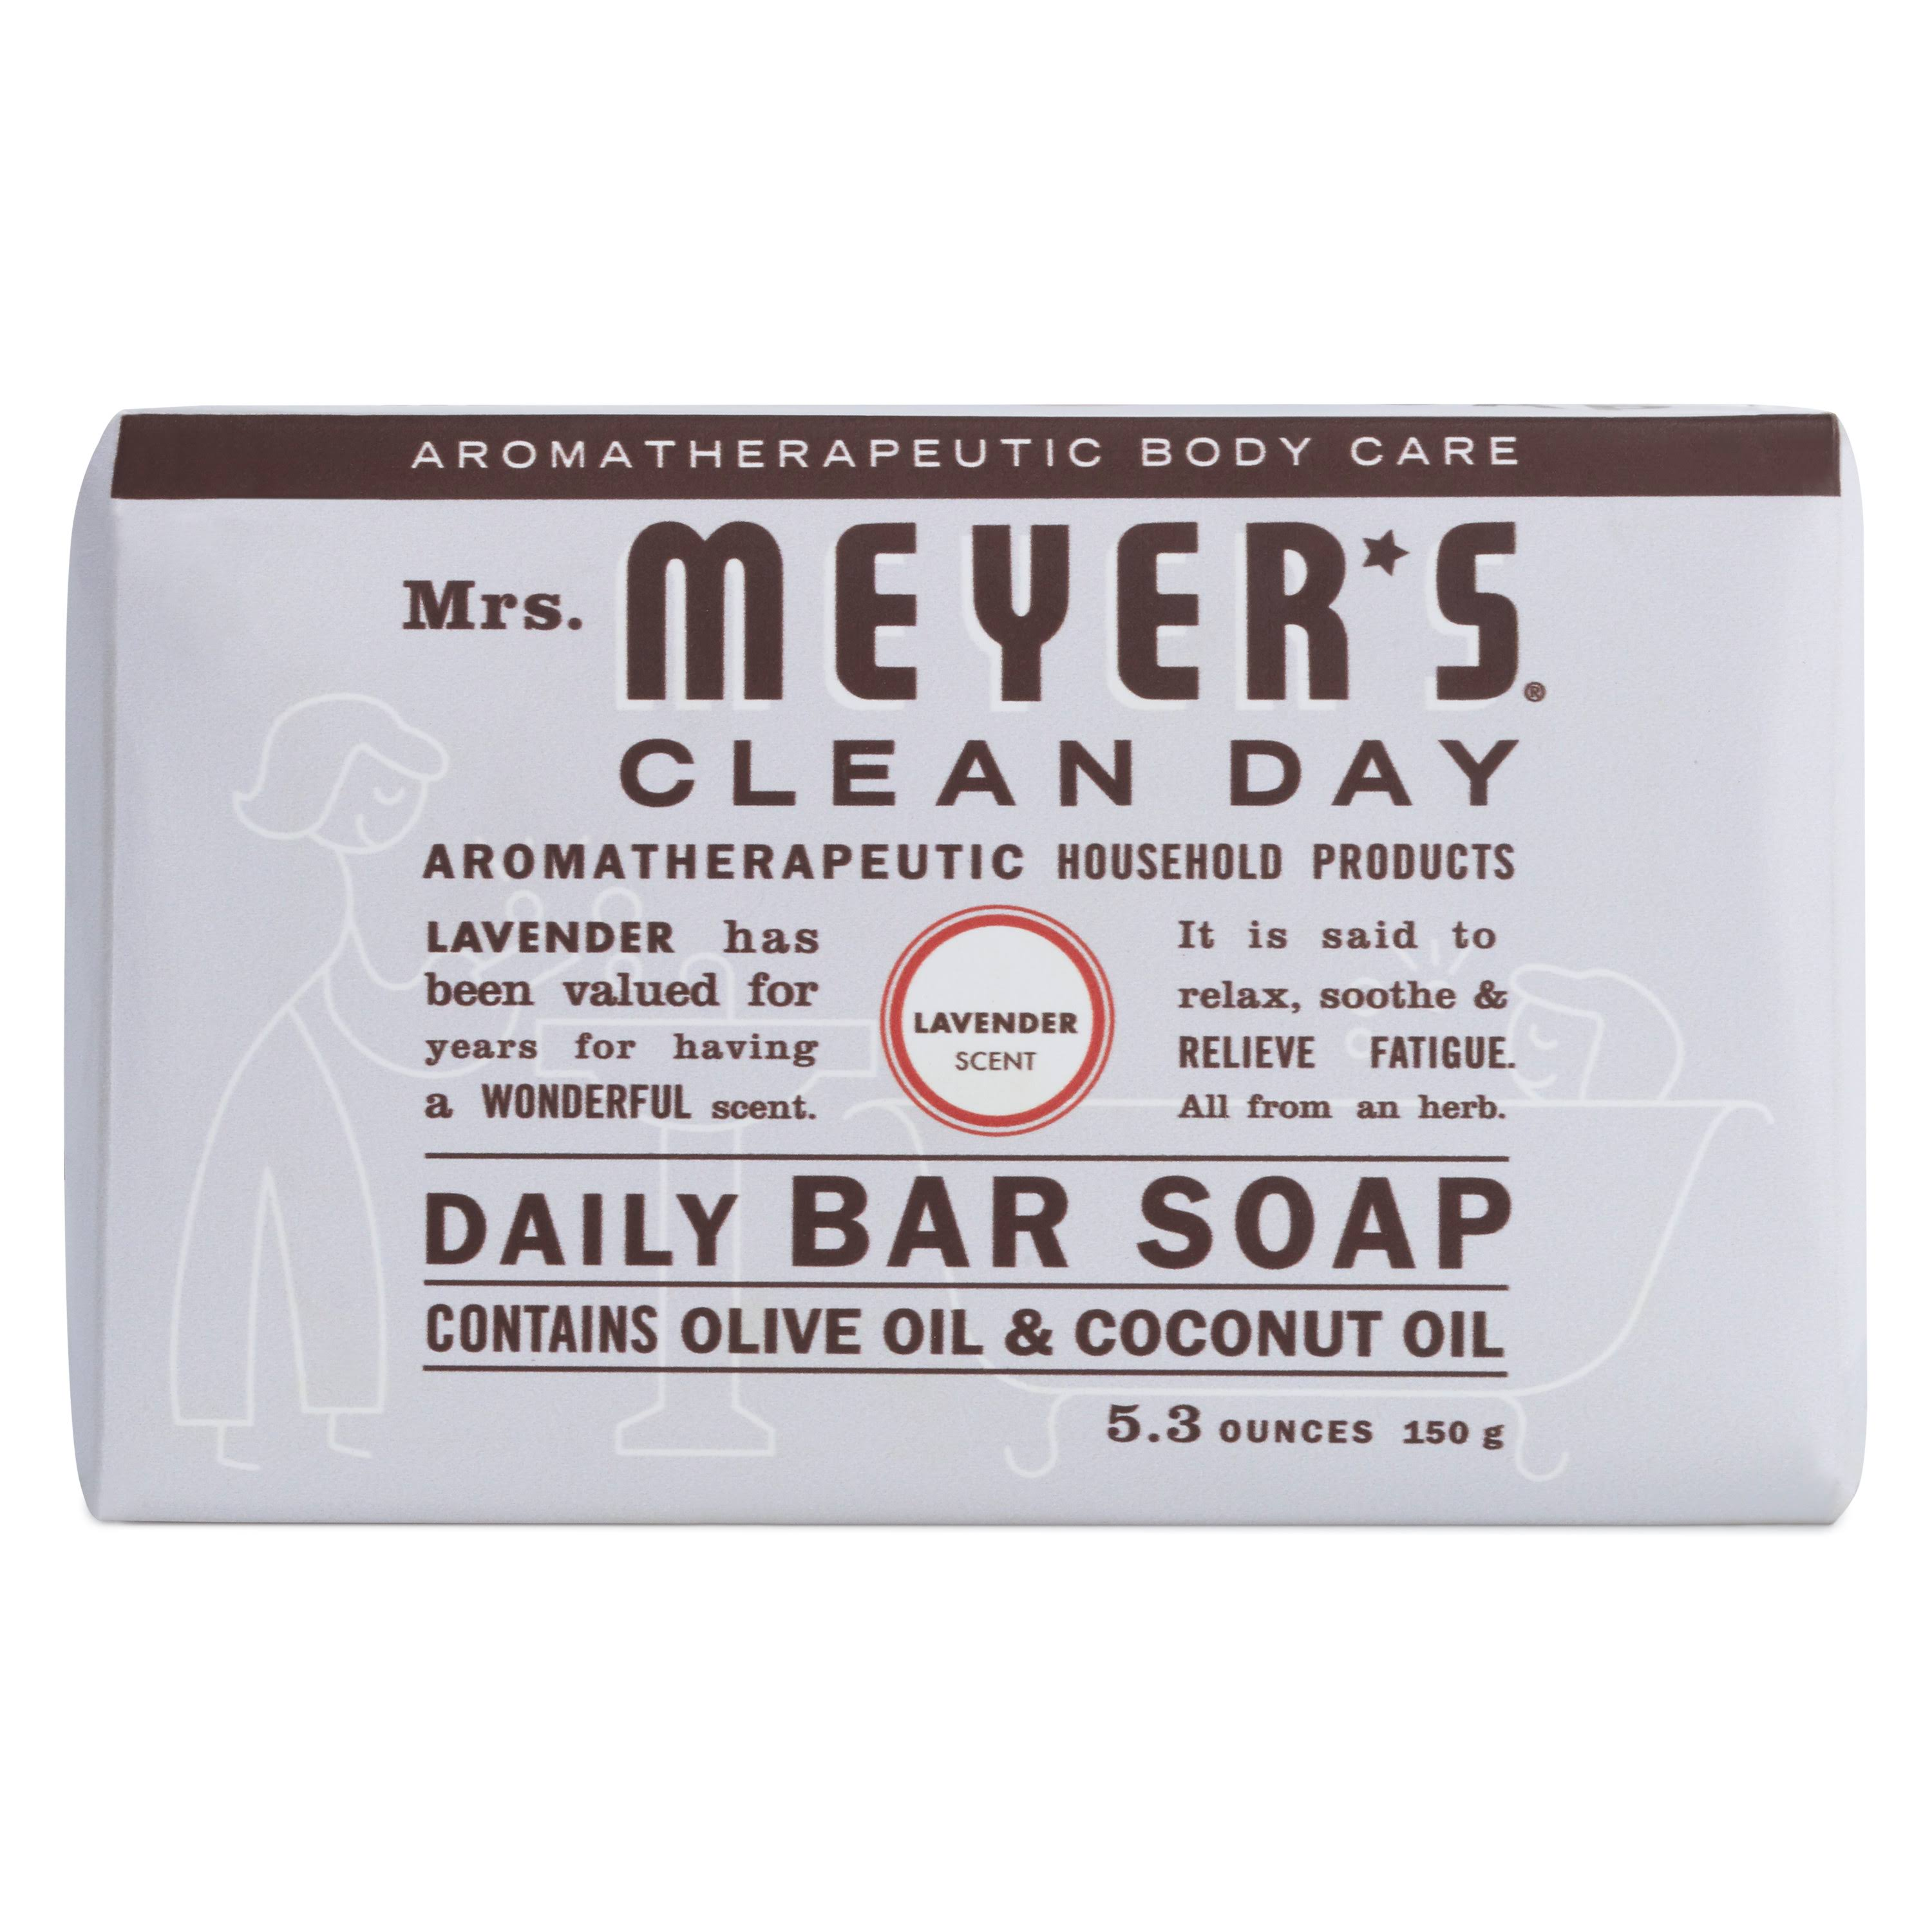 Mrs Meyers Clean Day Bar Soap, Daily, Lavender Scent - 5.3 oz